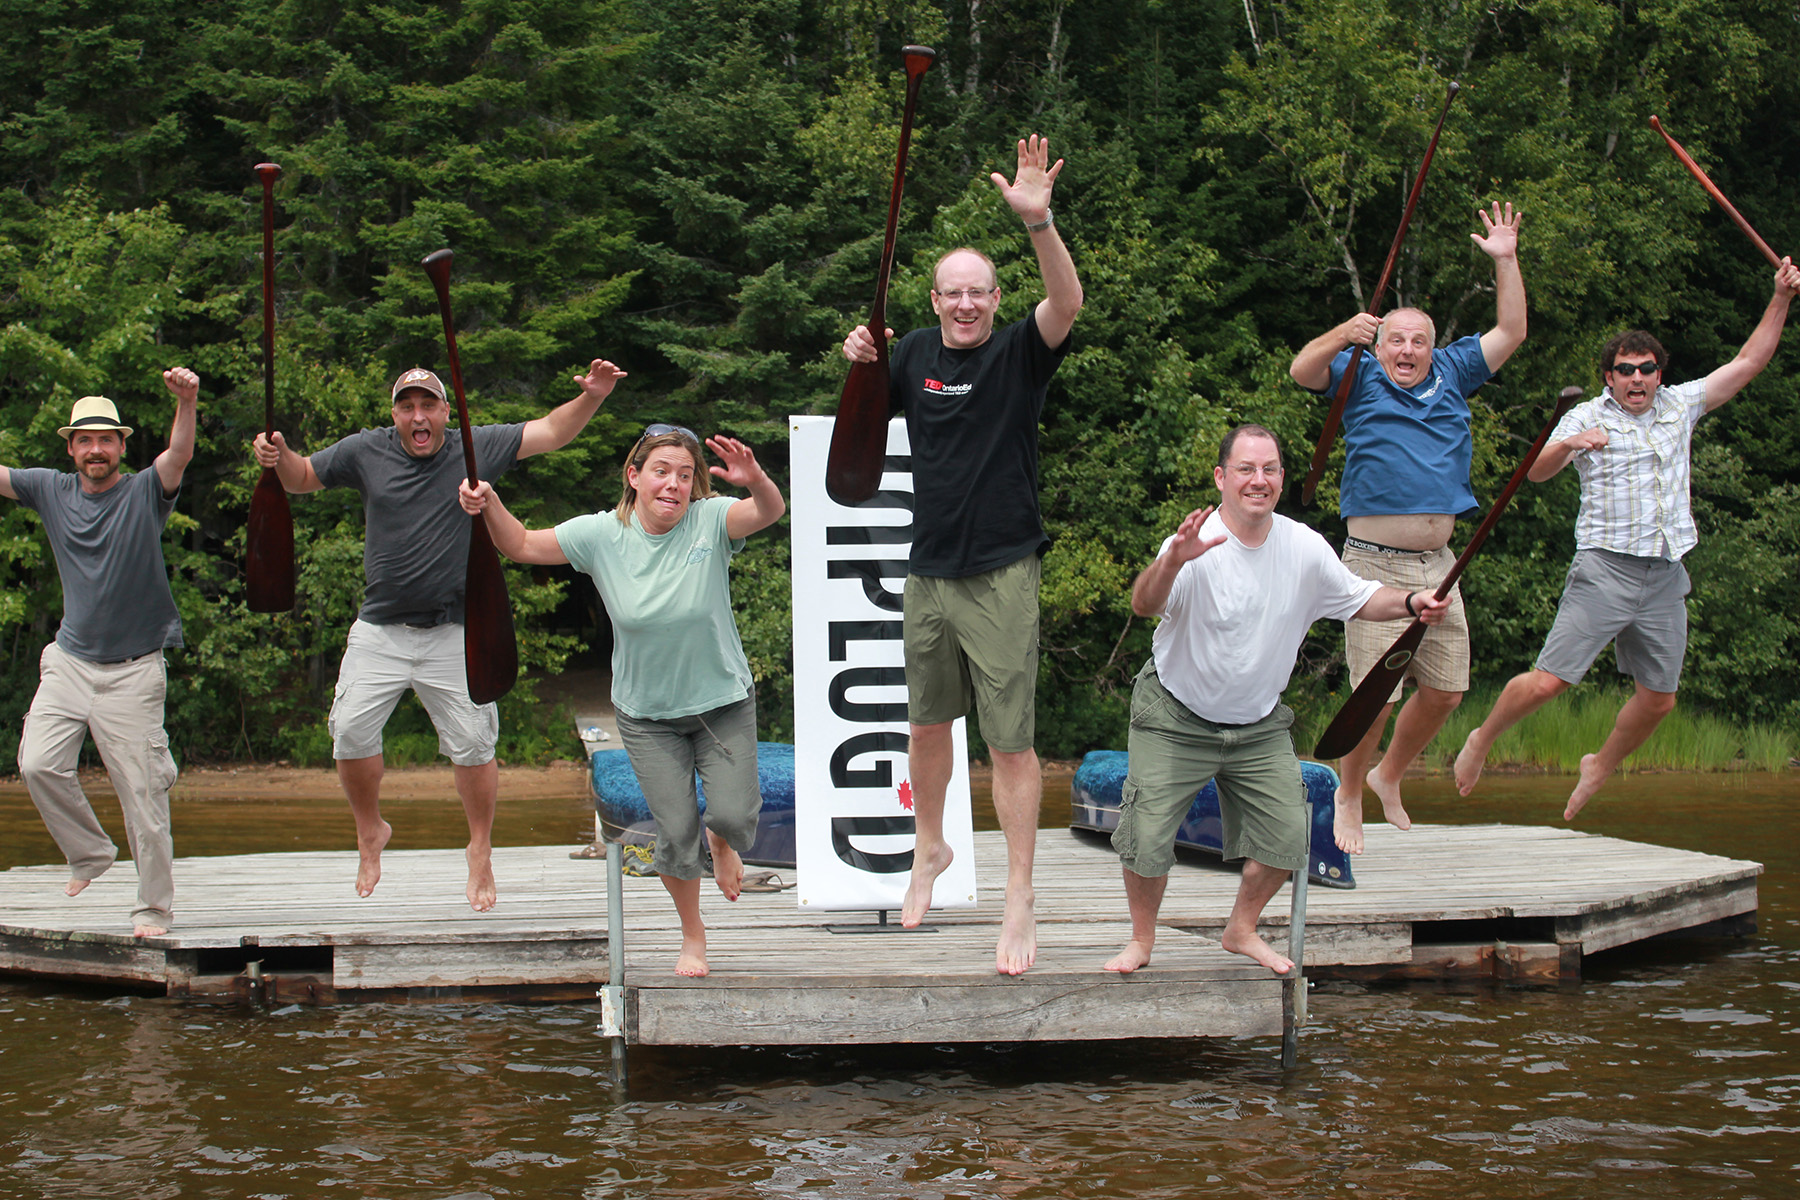 A corporate team does a creative group photo on the dock of Kawawaymog Lake